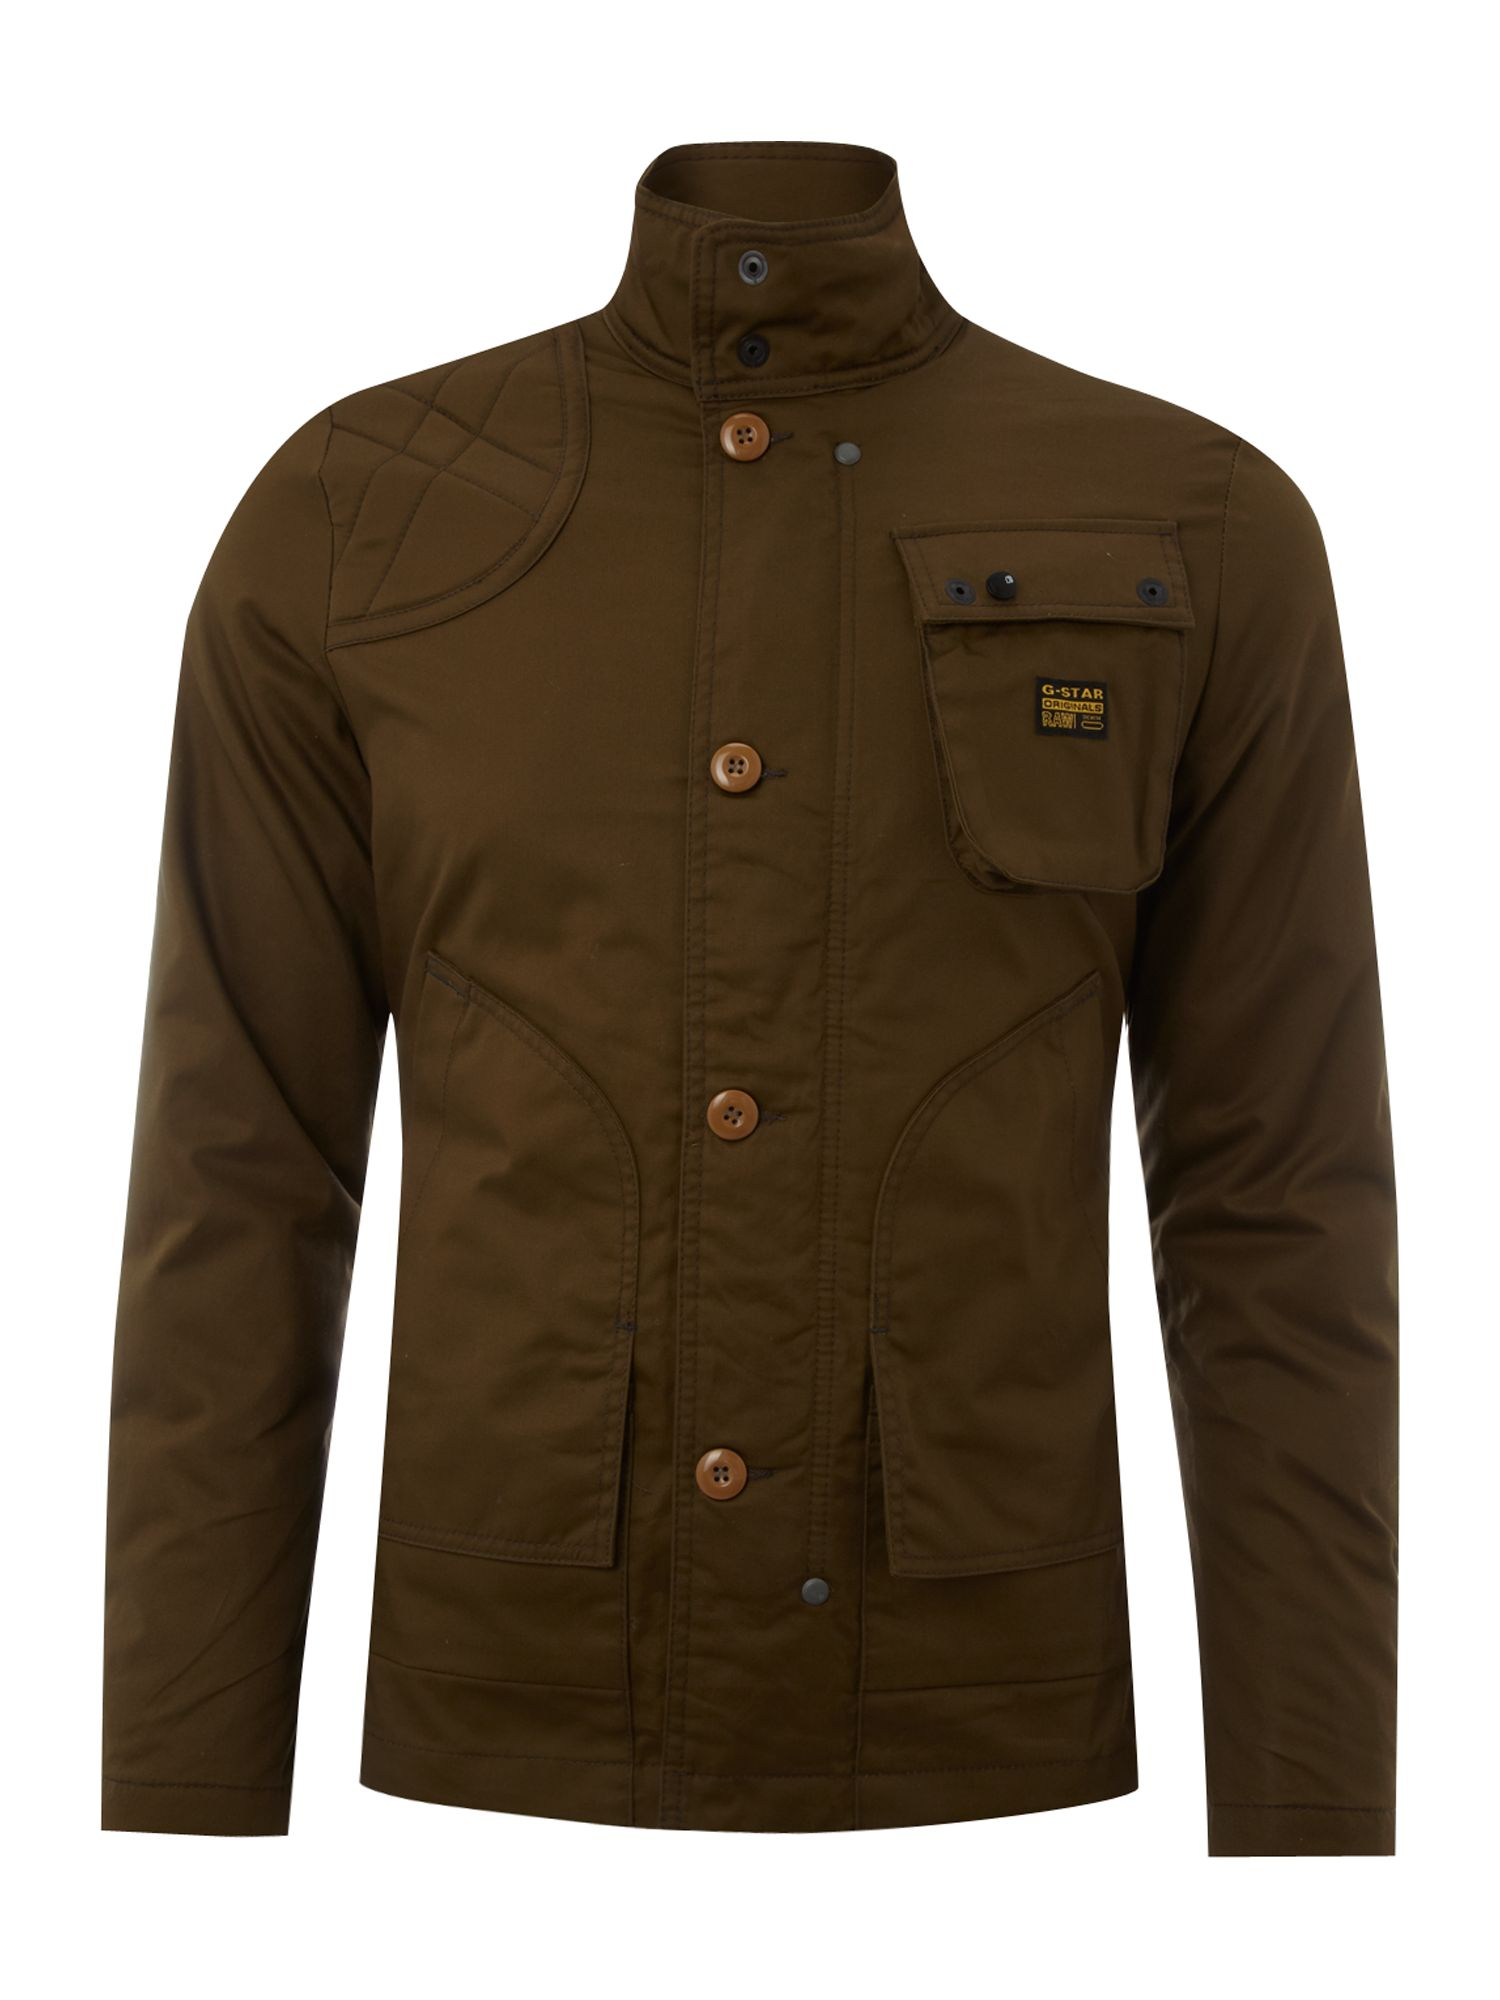 g star raw three pocket jacket in natural for men lyst. Black Bedroom Furniture Sets. Home Design Ideas